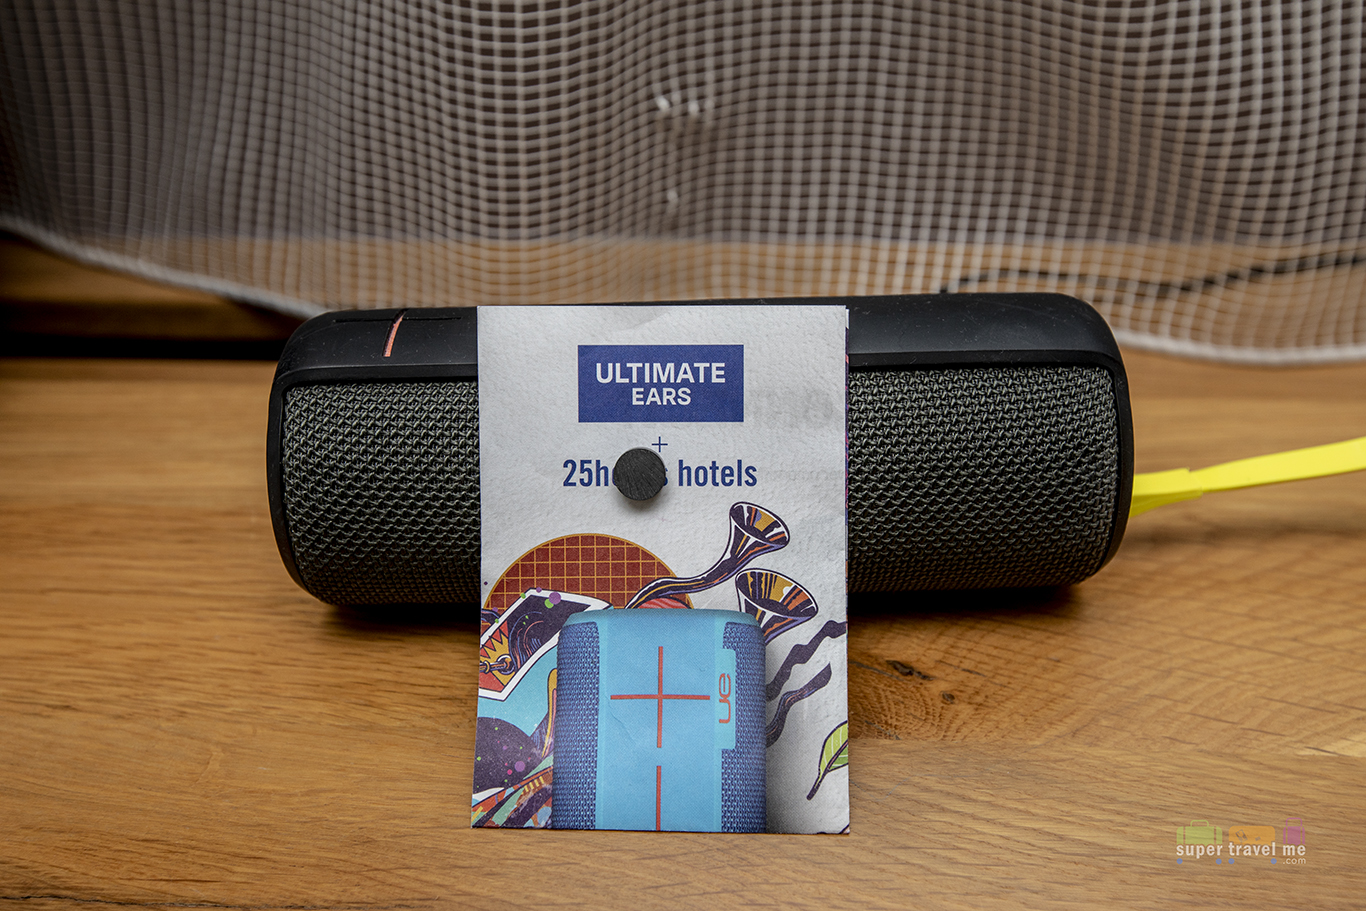 Bluetooth Speakers at 25hours Hotel Frankfurt The Goldman